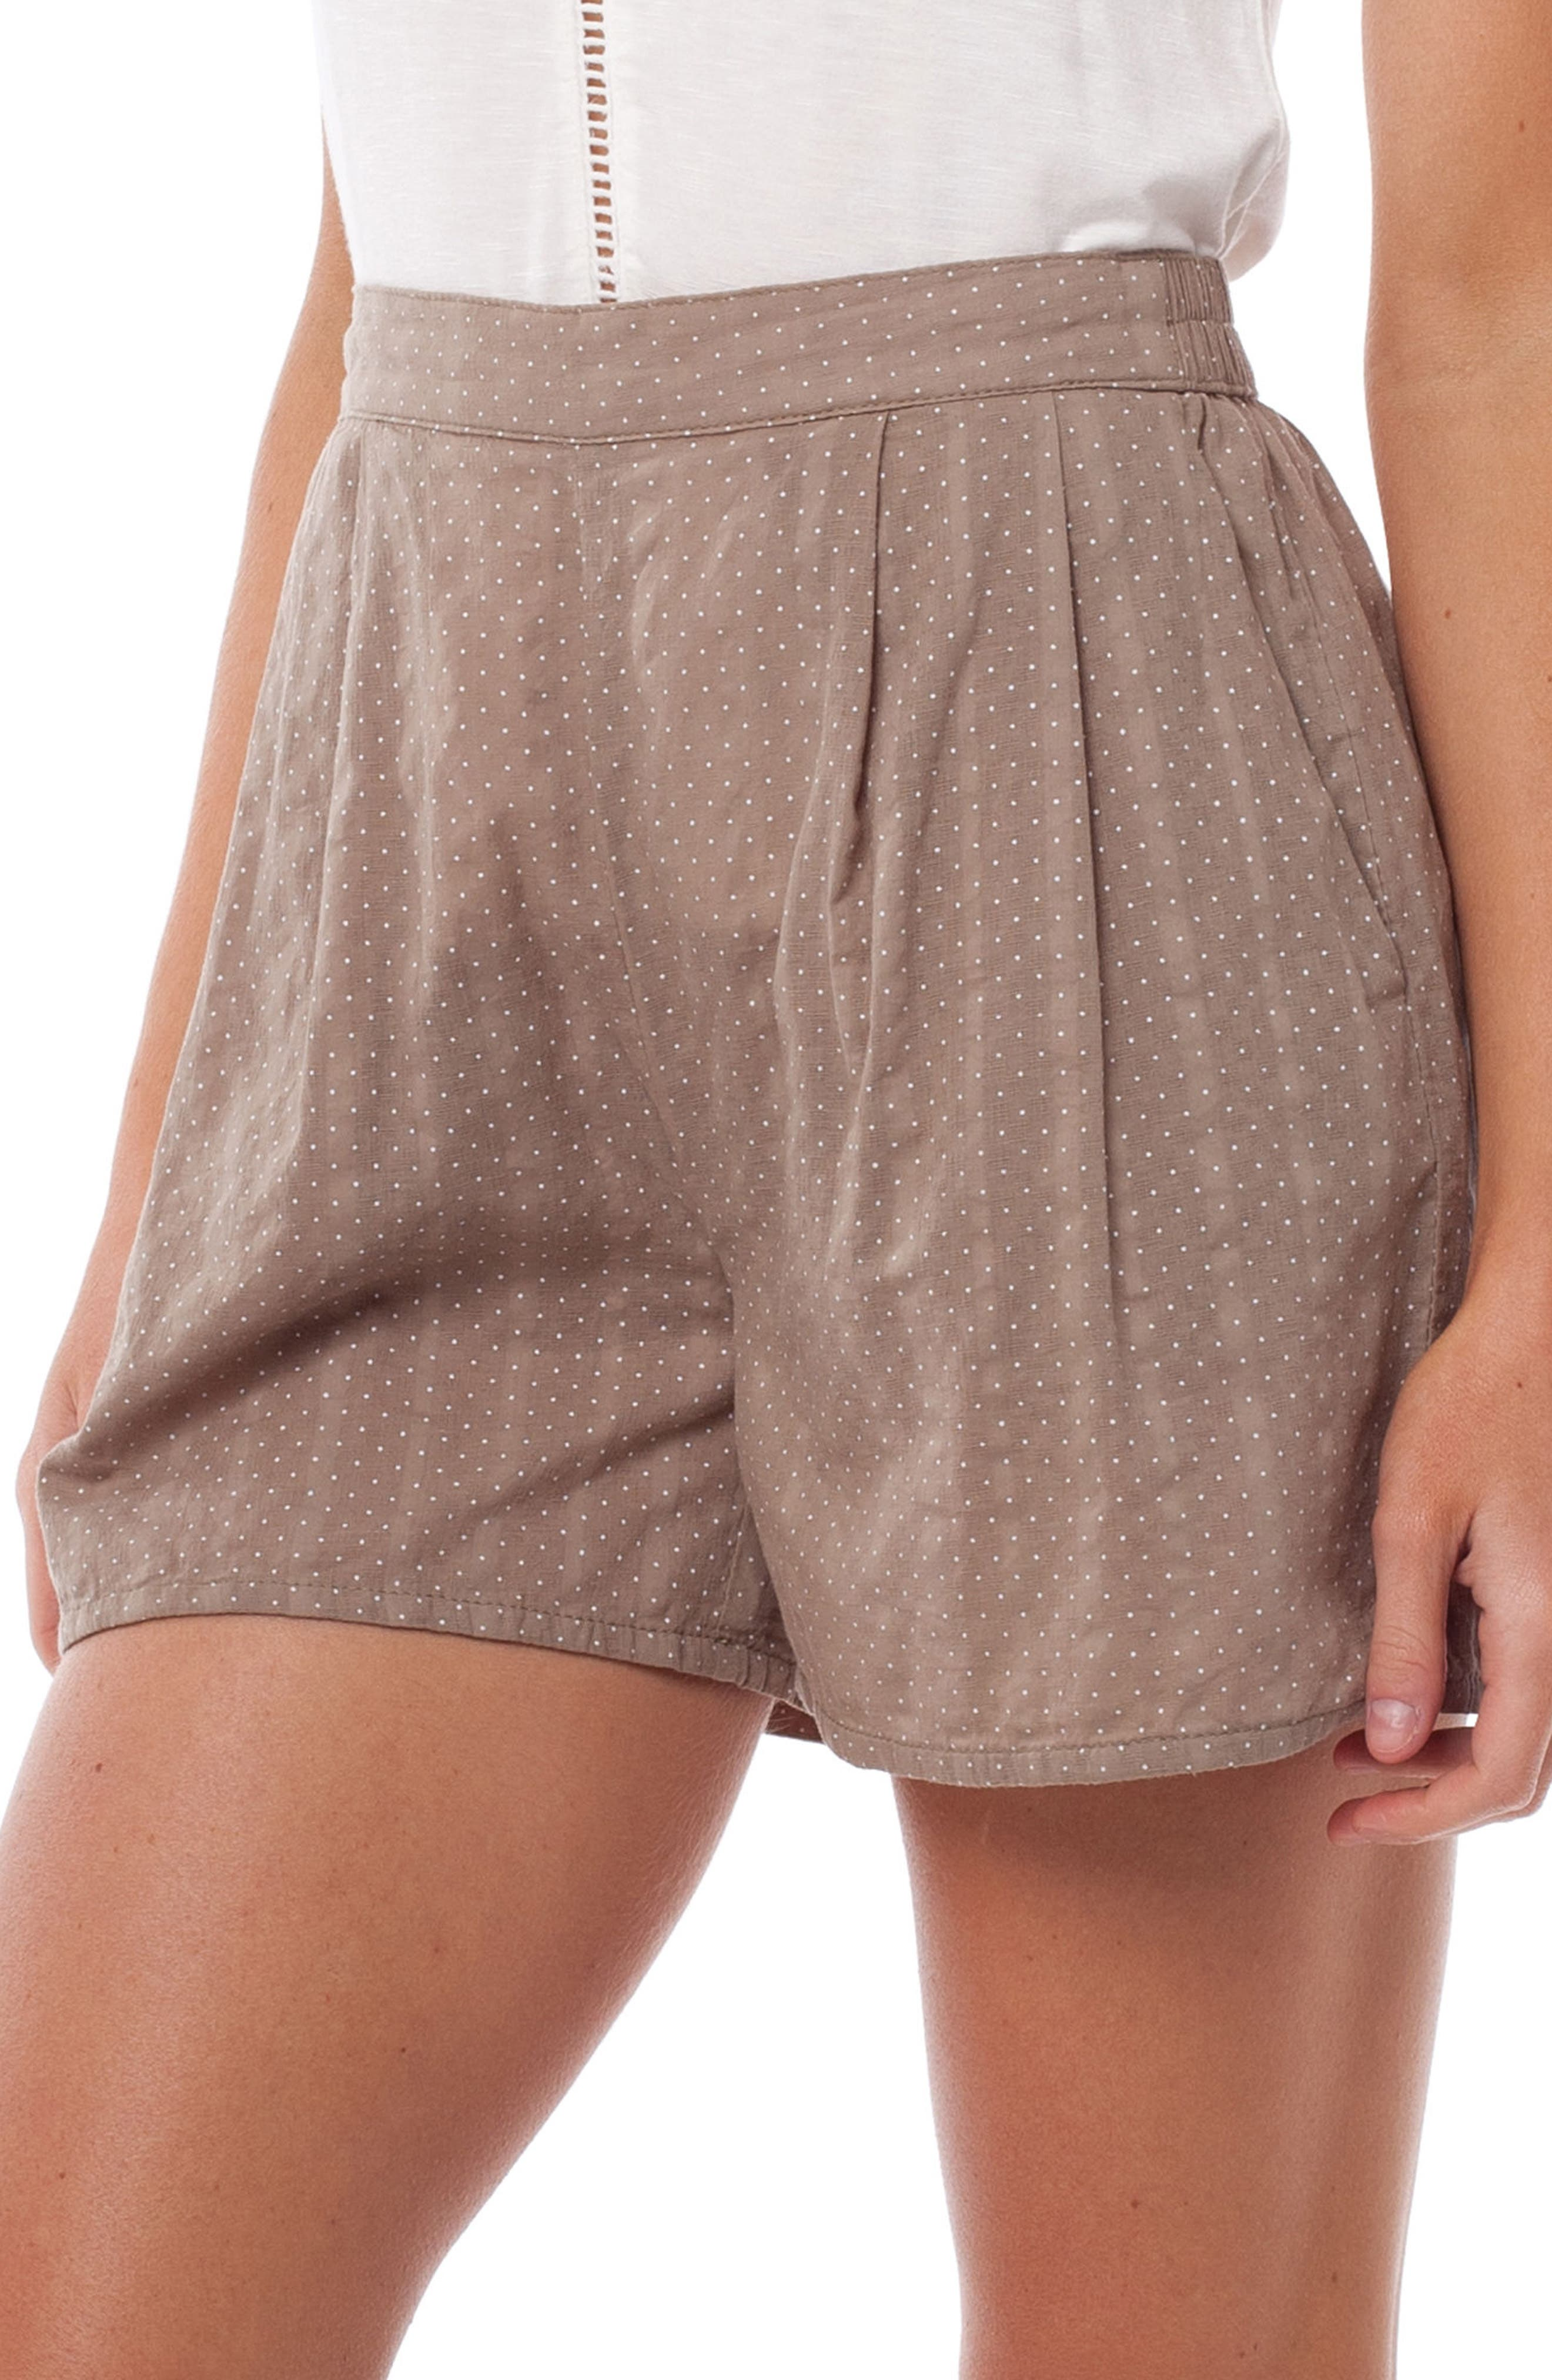 Messina Cover-Up Shorts,                             Alternate thumbnail 3, color,